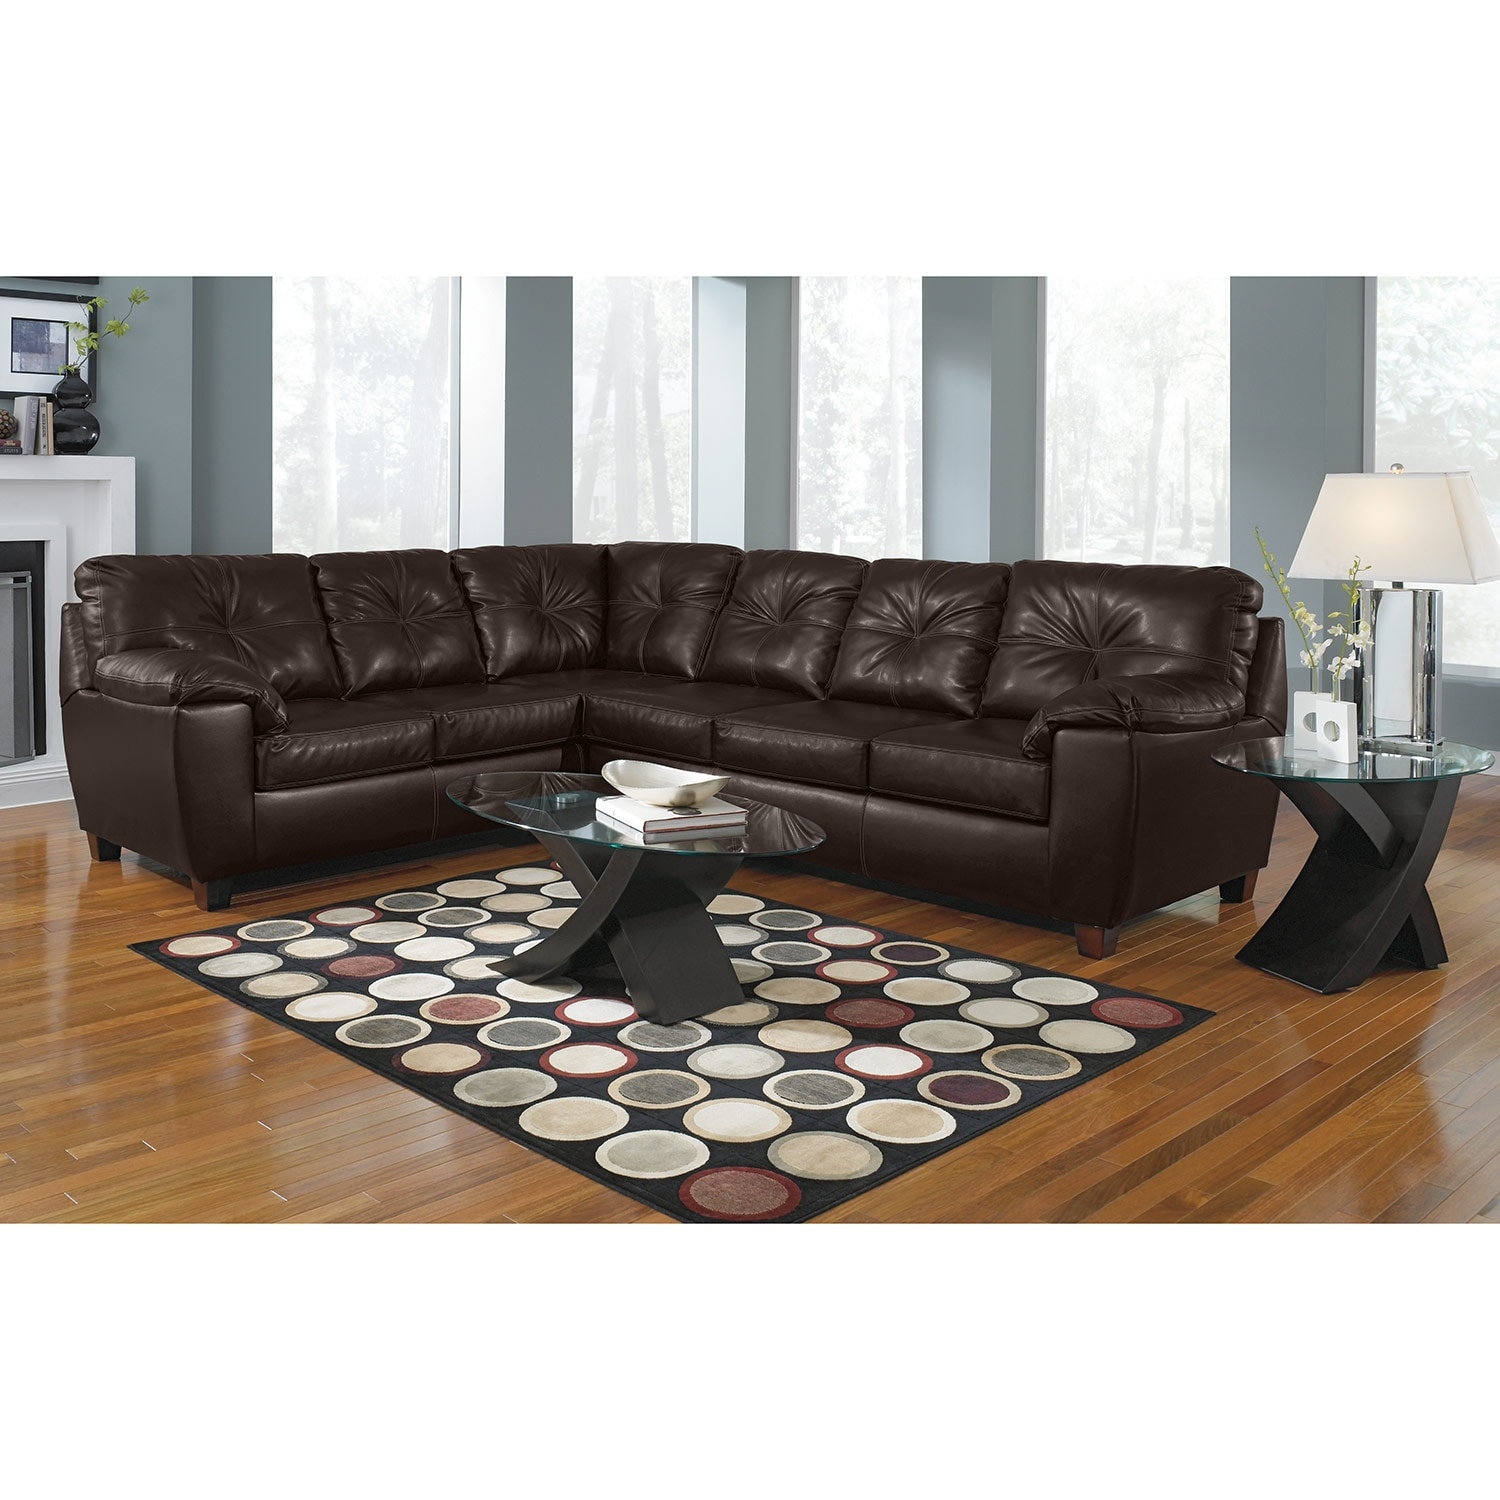 Value City Furniture Clearance Center: Rialto 2-Piece Sectional With Right-Facing Innerspring